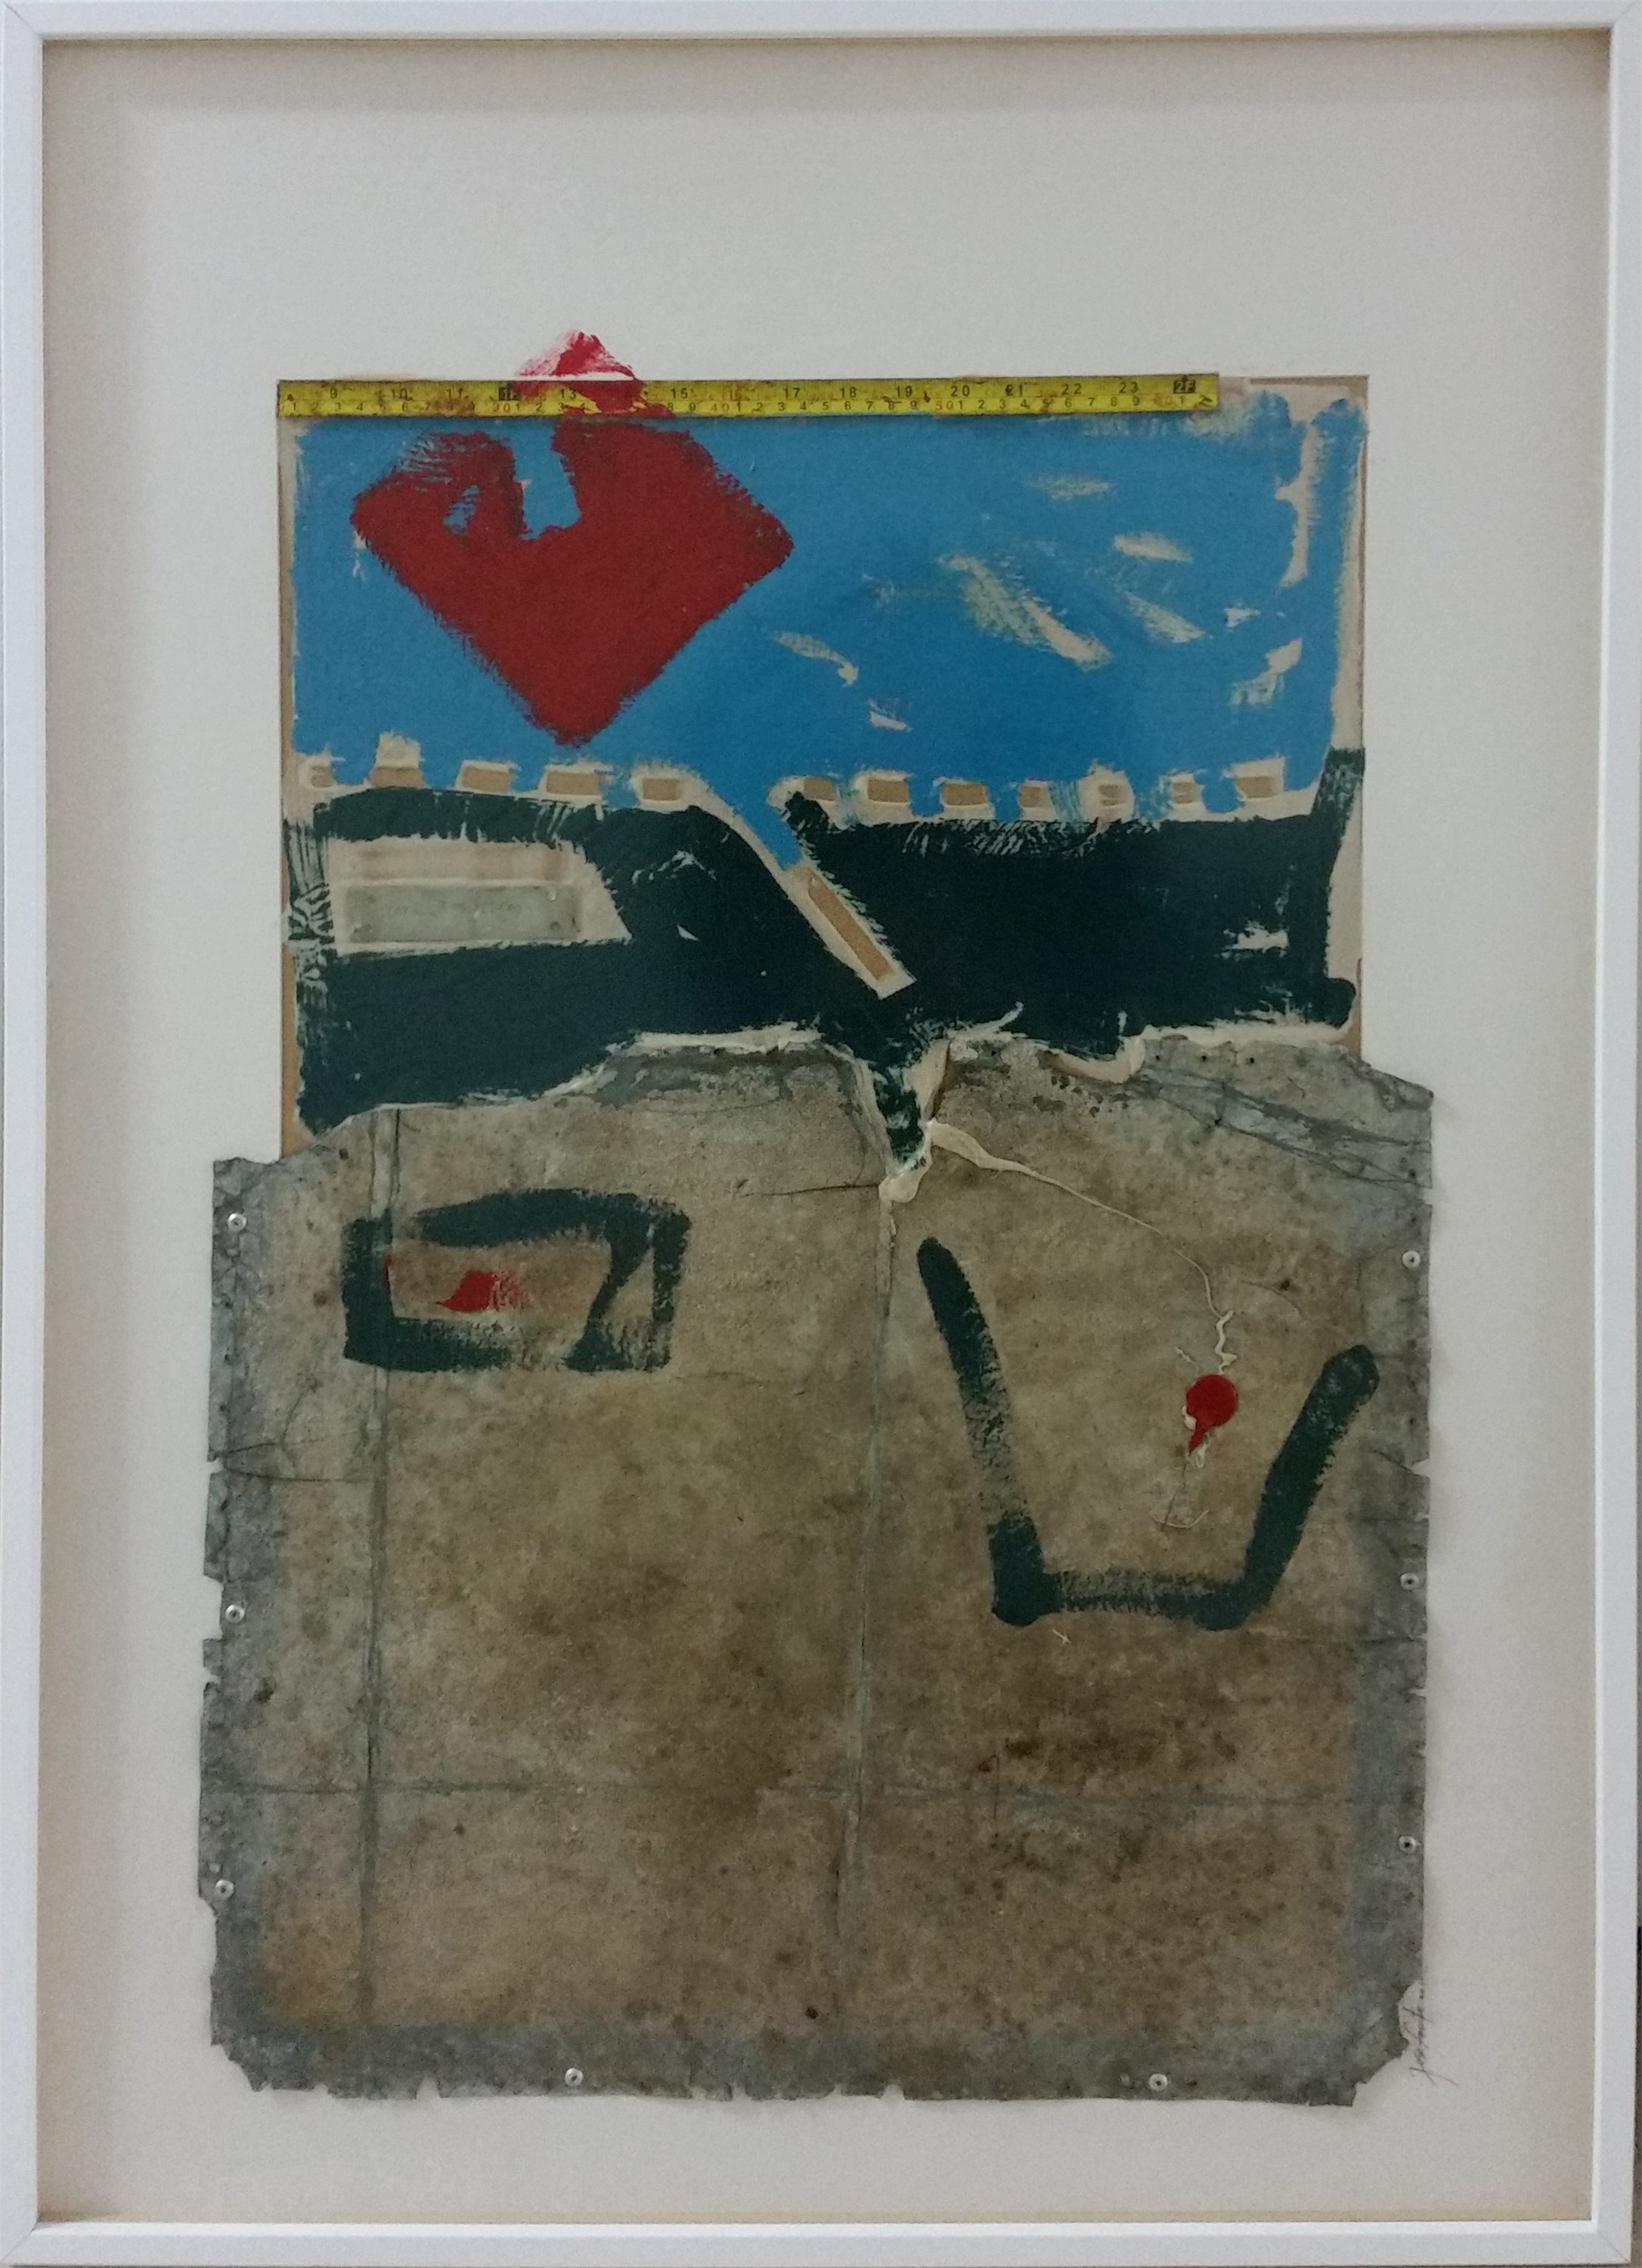 Next to the river #1, original Abstract Paperboard Painting by José Fonte